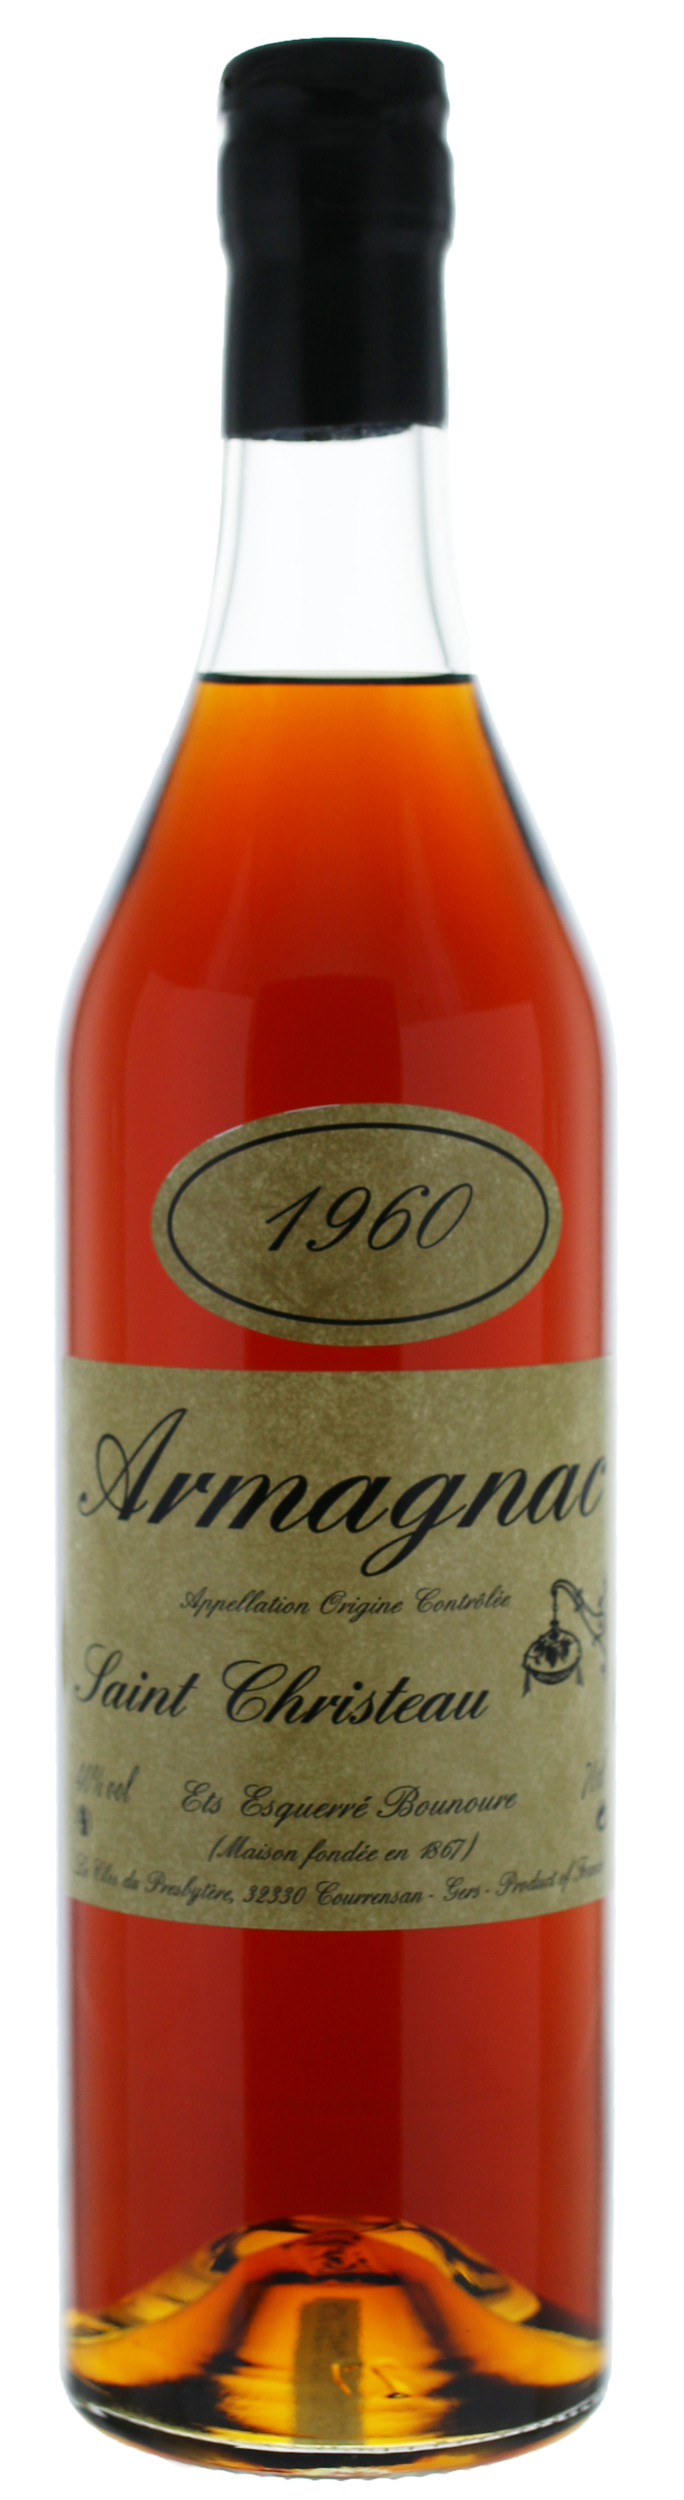 ARMAGNAC - 1960 - Saint-Christeau - 40° - G. Miclo